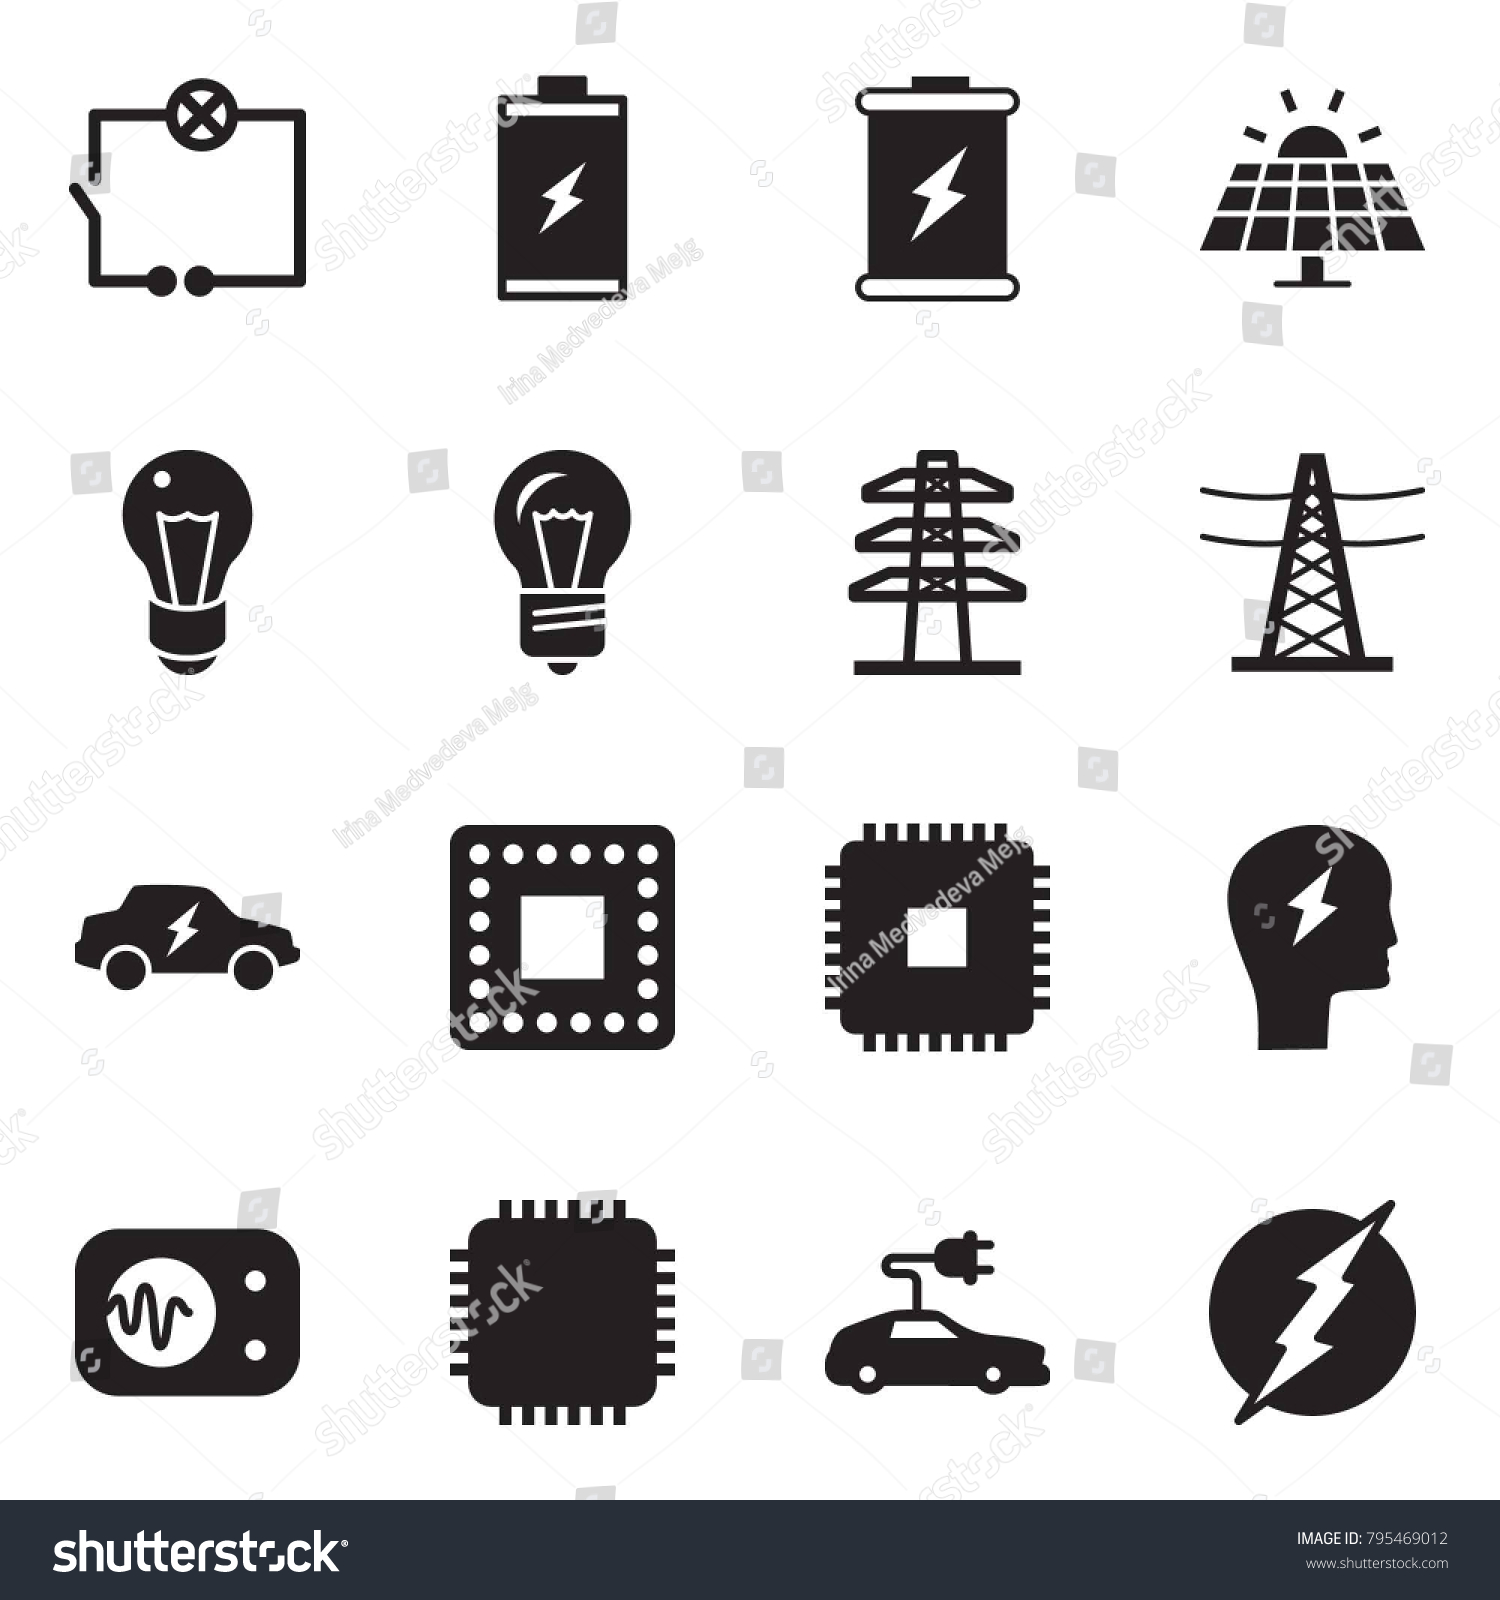 Panel Wiring Icon Schematics Diagrams Money Near Me Solid Black Vector Set Stock Royalty Free Rh Shutterstock Com Color Code Icons